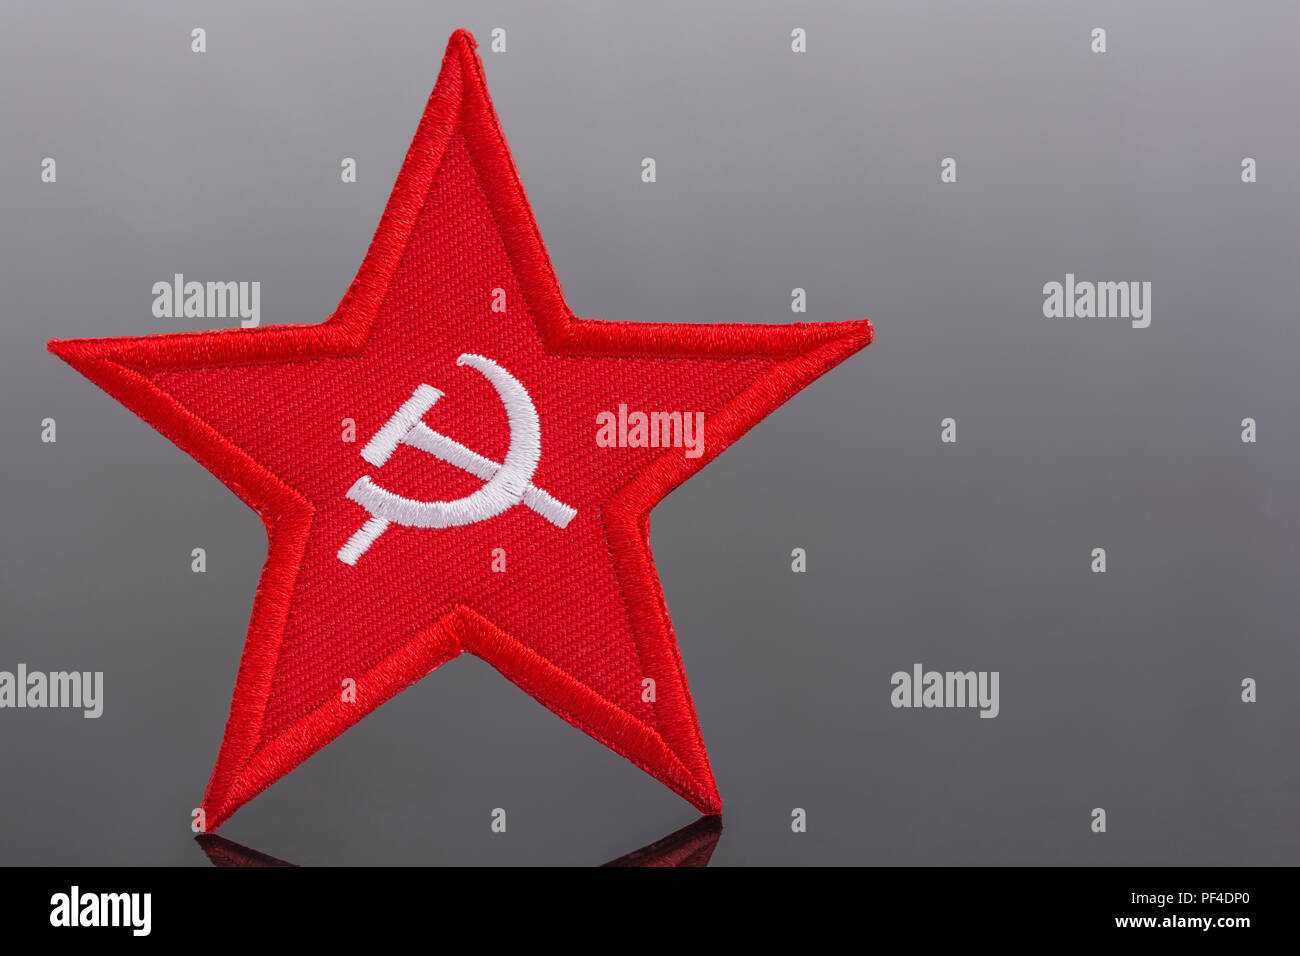 Red Star Hammer and Sickle badge with US / American Stars and Stripes flag. Metaphor US Radical Left, Activism, Democratic Socialists, US Elections. Stock Photo